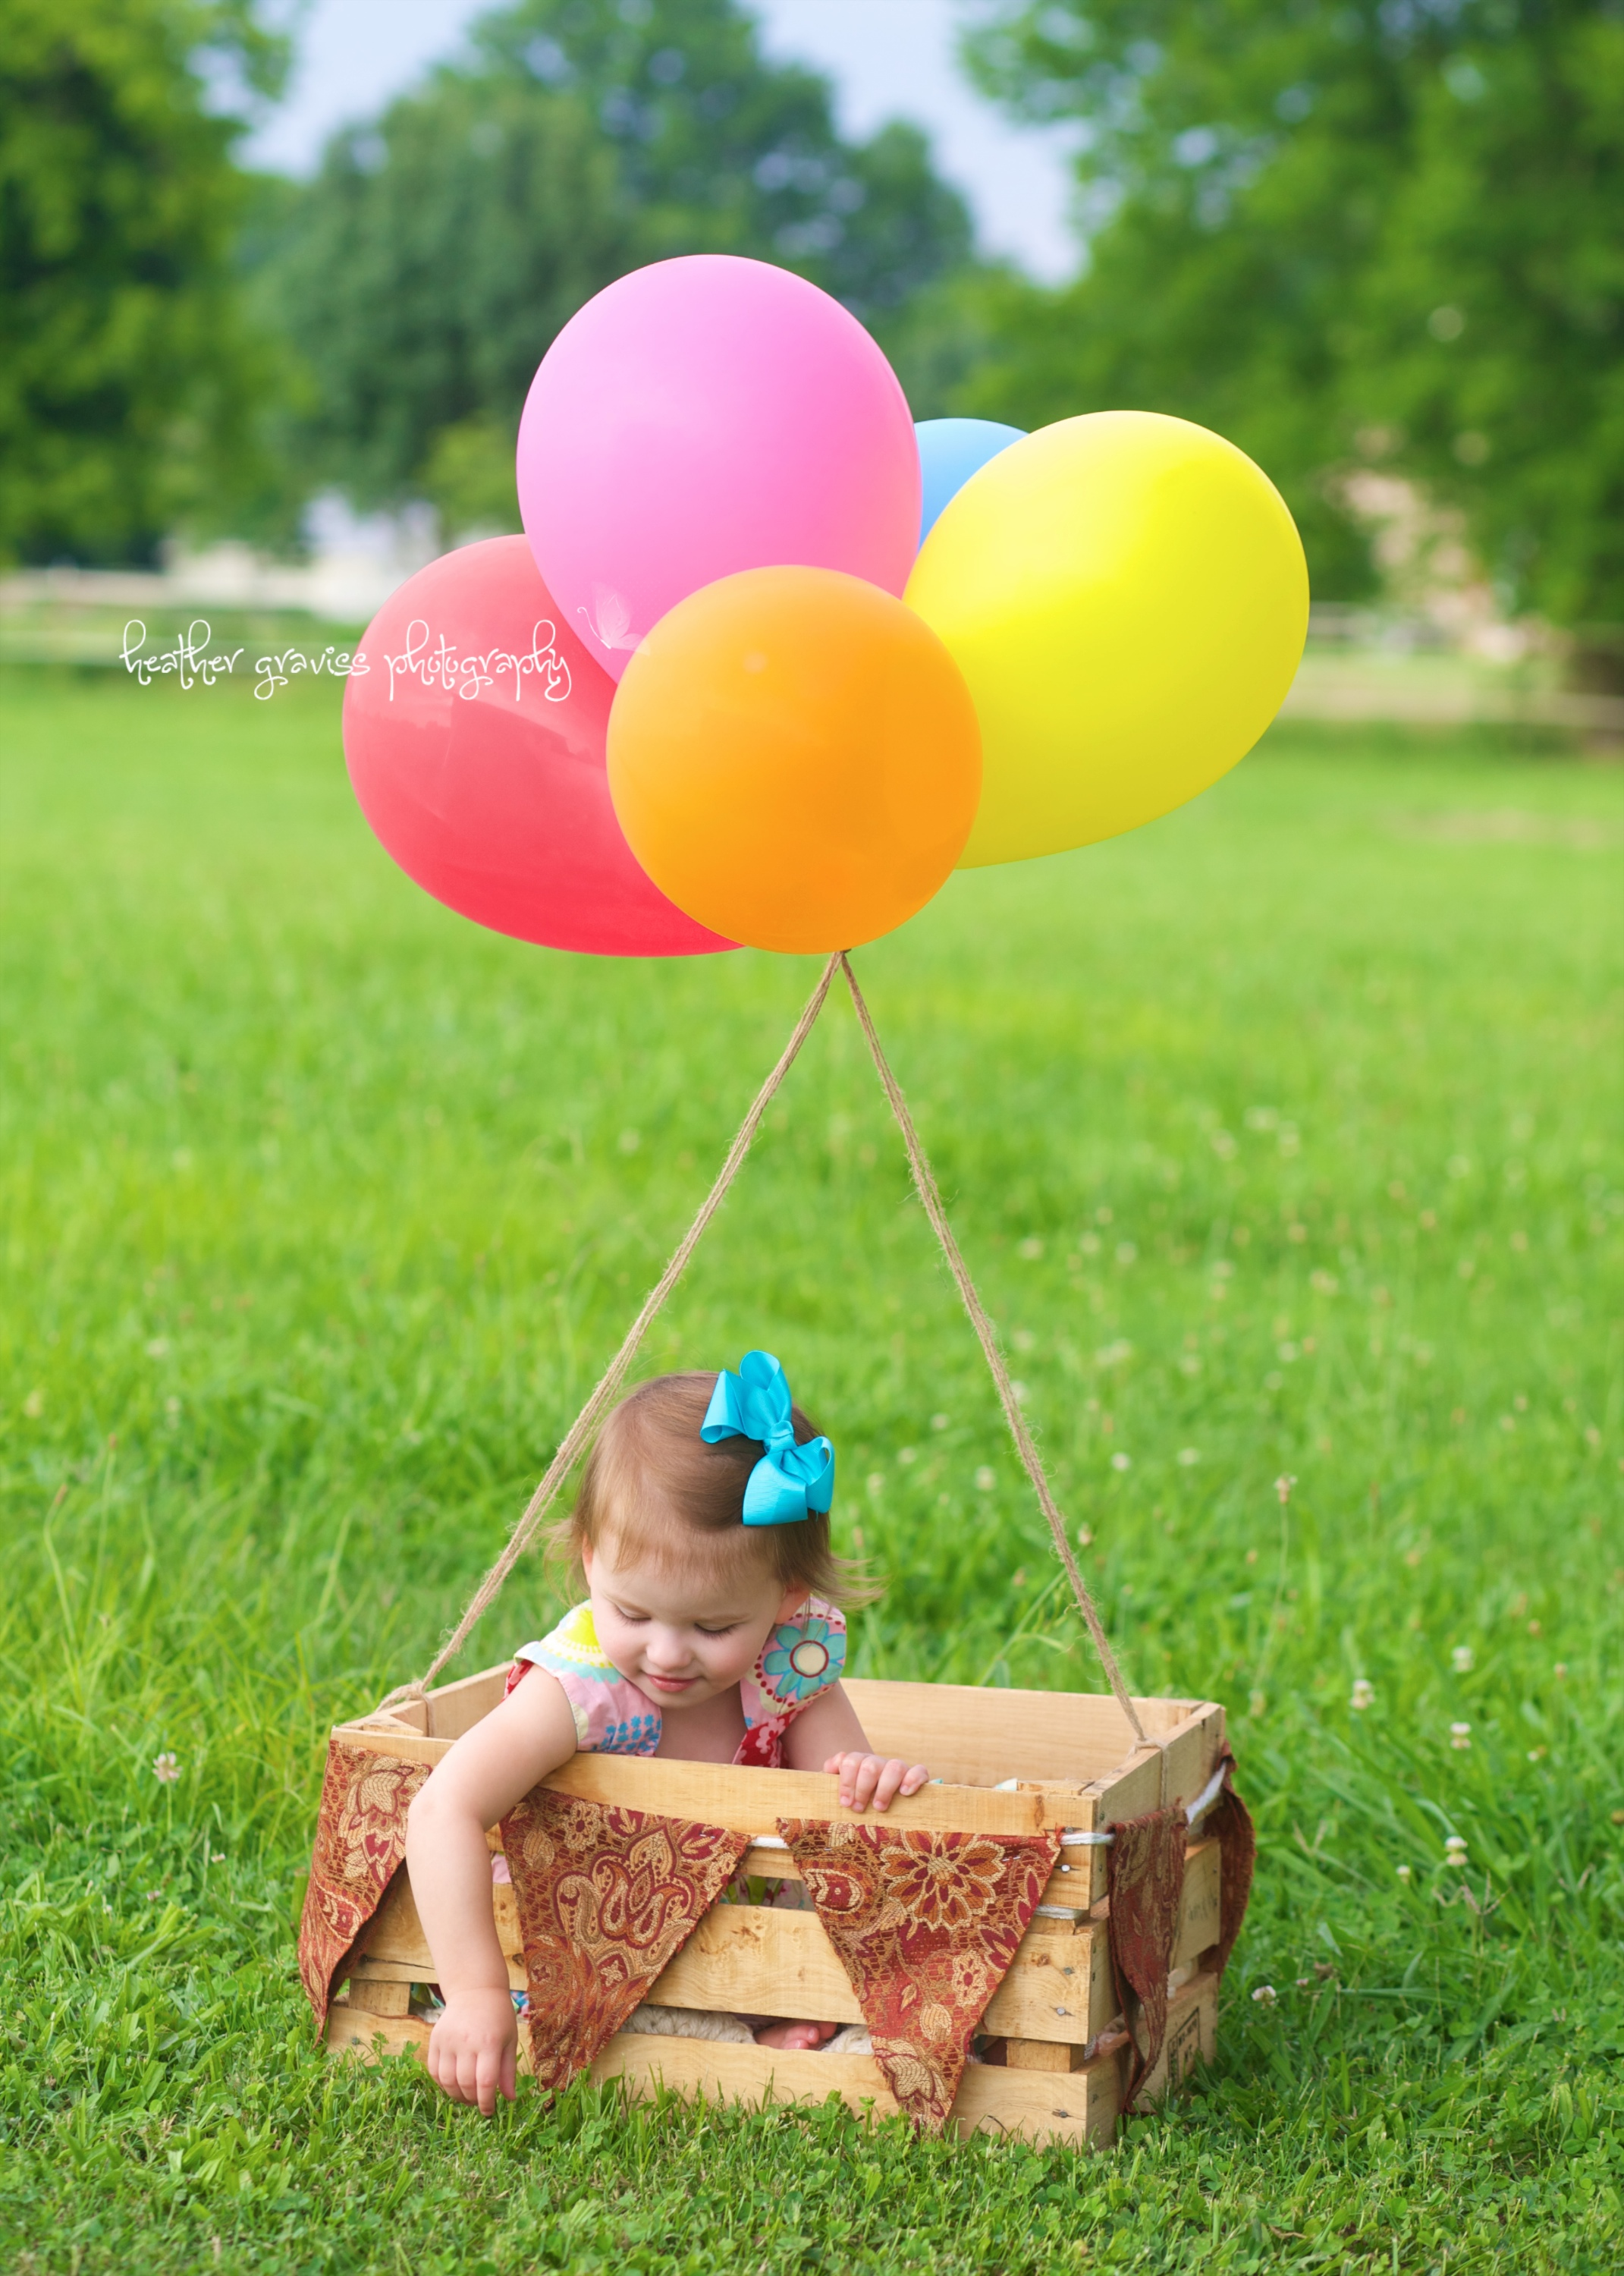 girl in balloonbasket